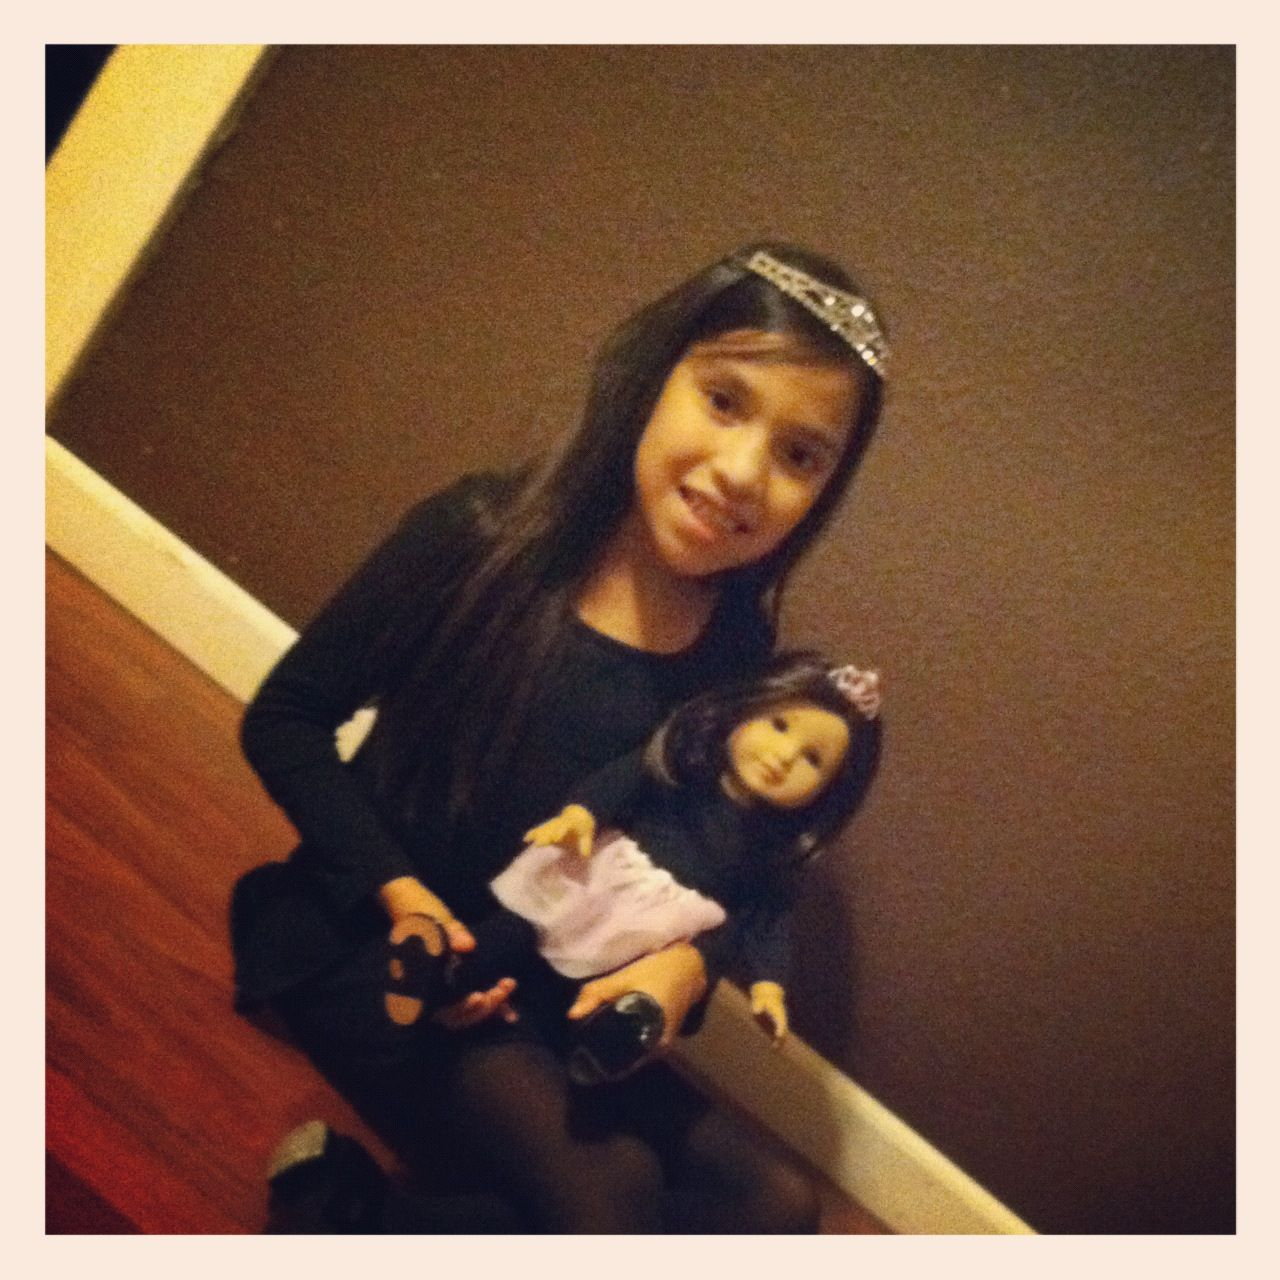 Her doll and her ready for tap..